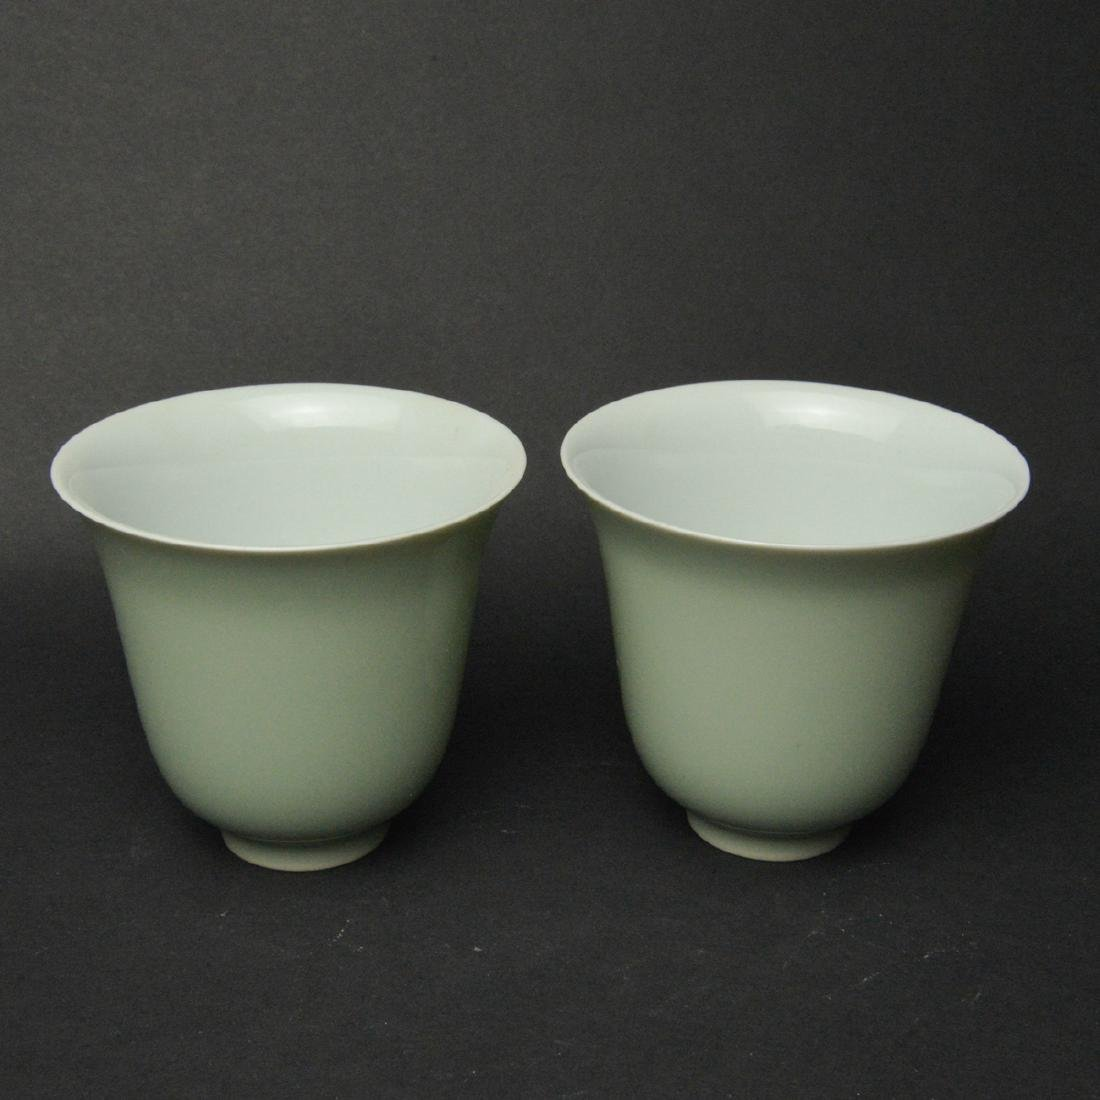 CHINESE PORCELAIN CUPS, PAIR - 2